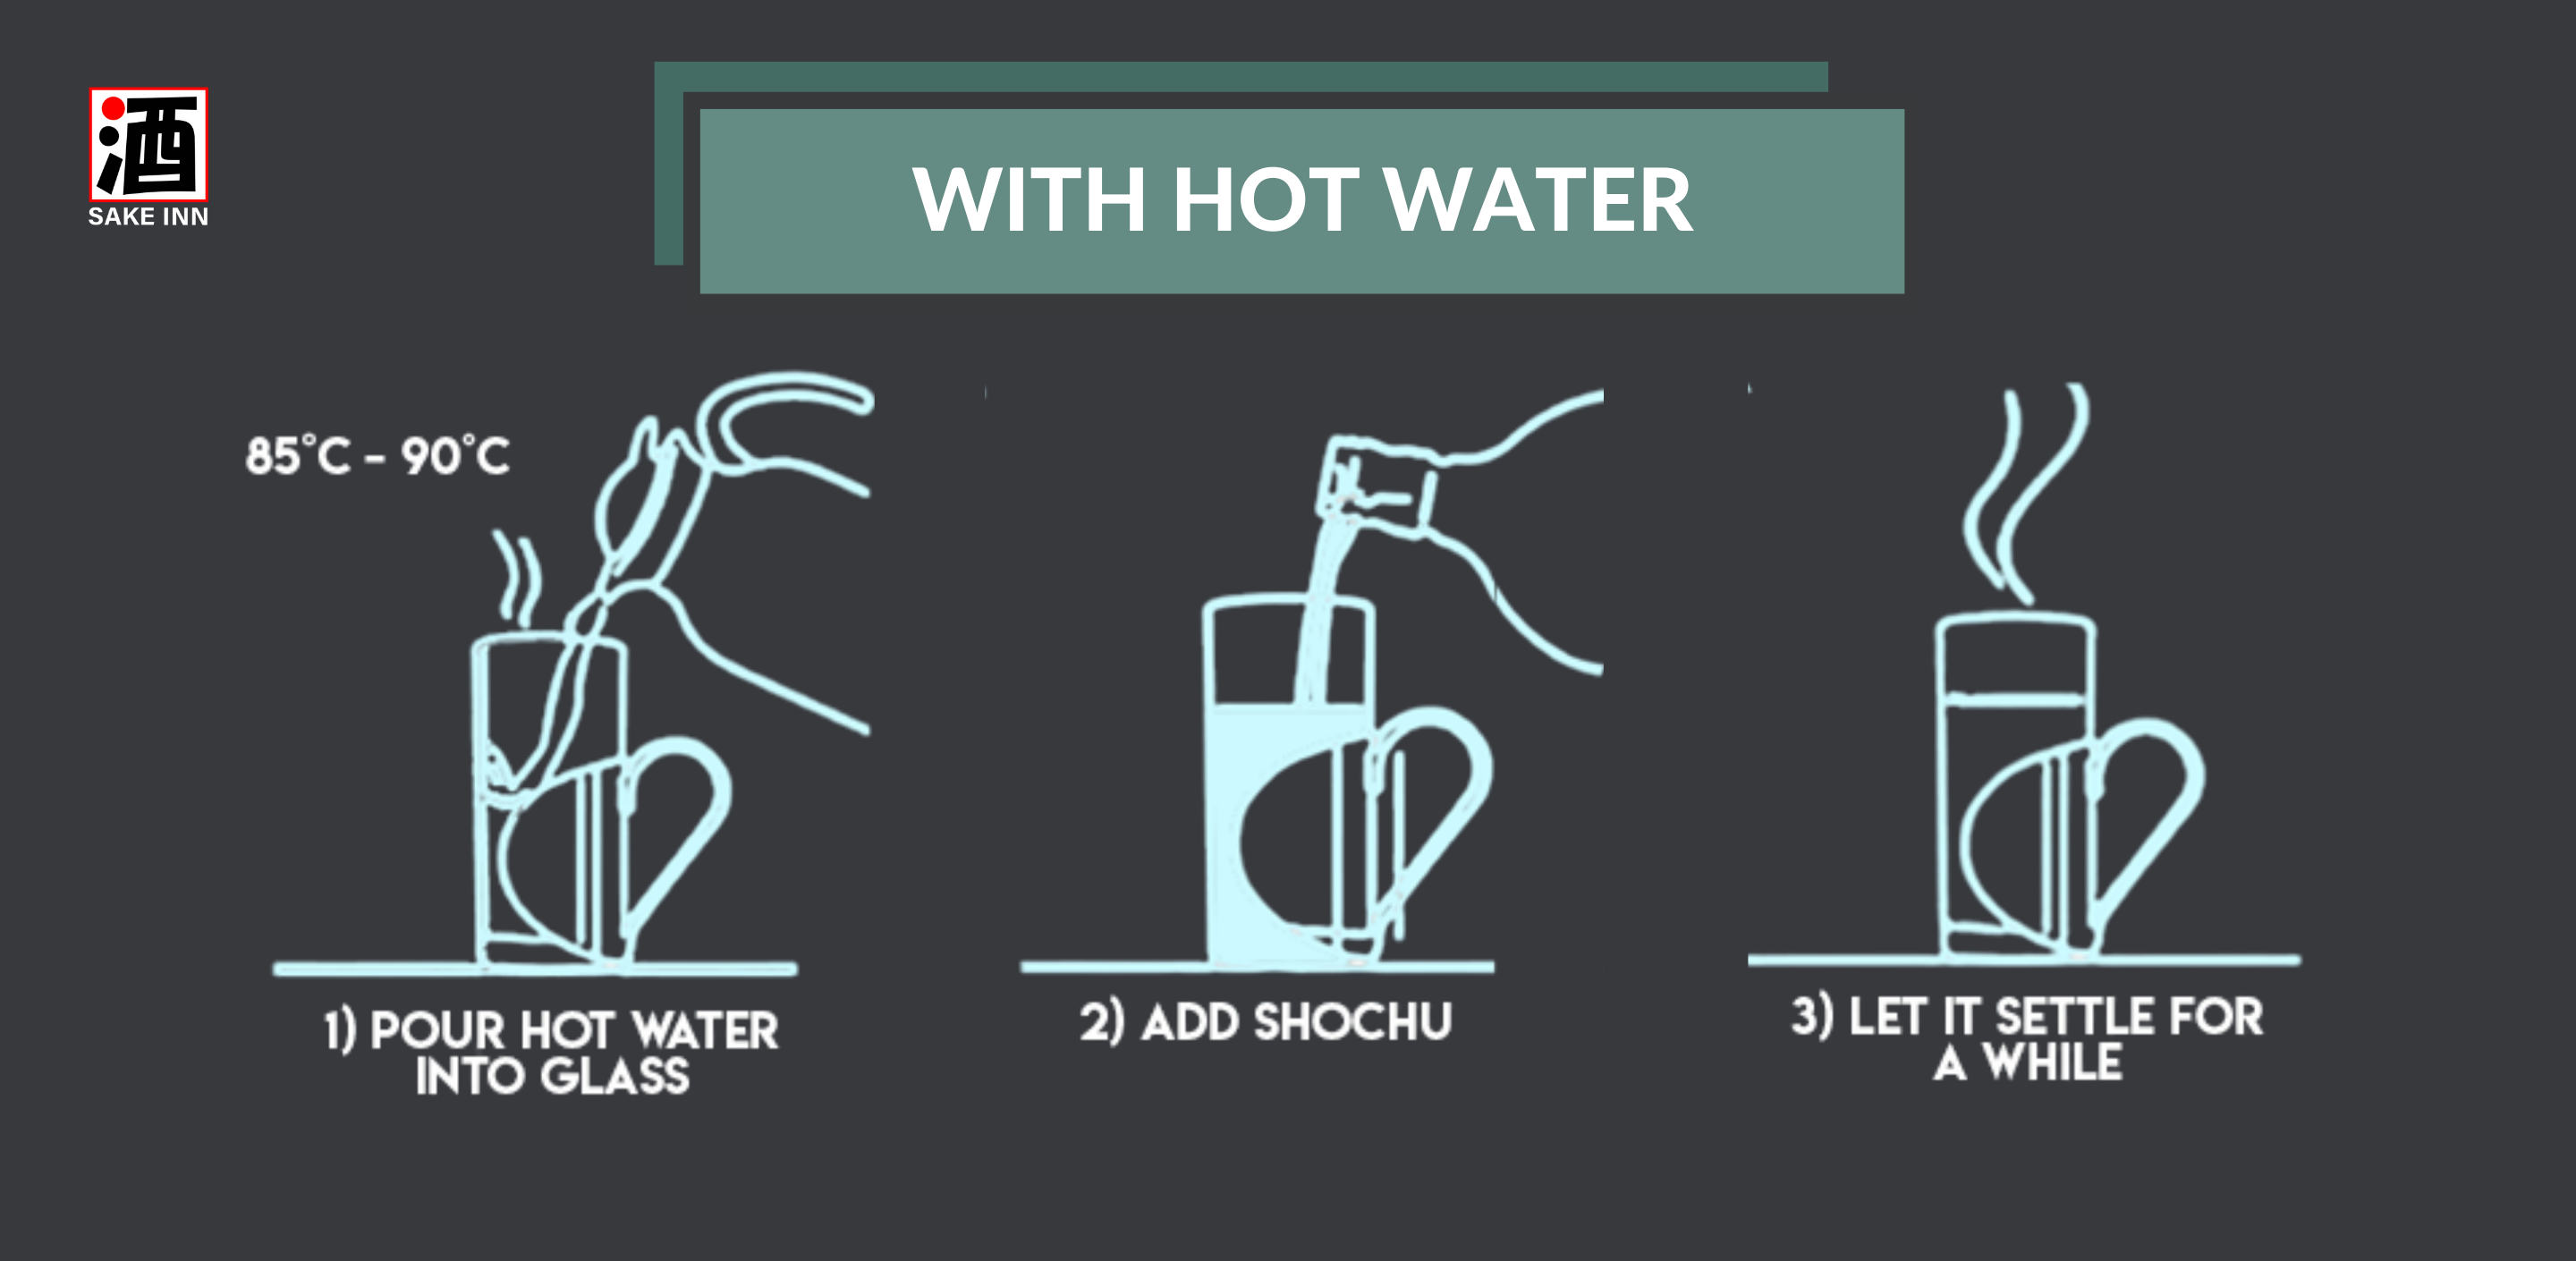 Sake Inn Japanese Shochu Beginner's Guide | Ways to drink shochu - with hot water